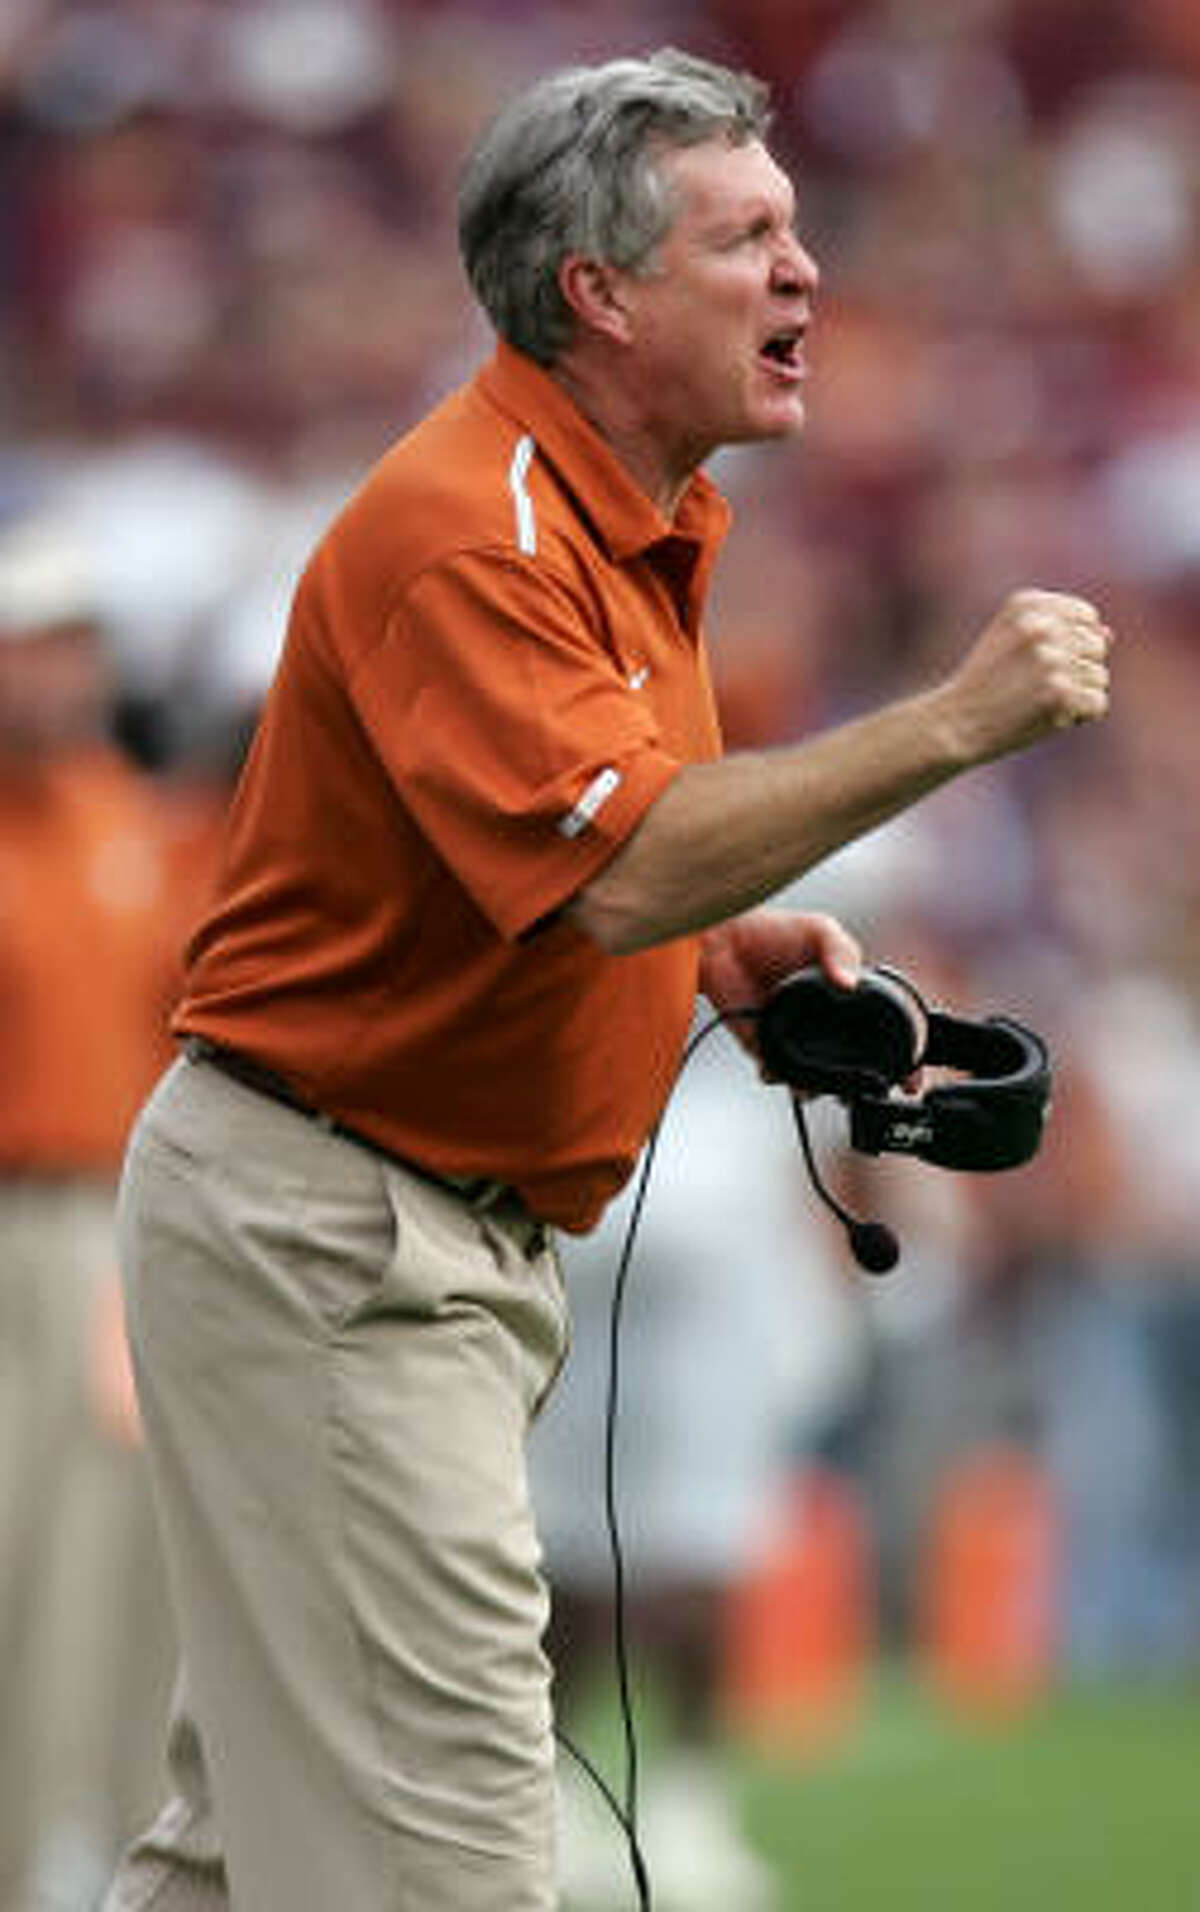 With 11 seasons at Texas, Mack Brown is the dean of Big 12 coaches. Brown says he's not ready to step down with eight years remaining on a 10-year contract that runs through 2016. But he warns,